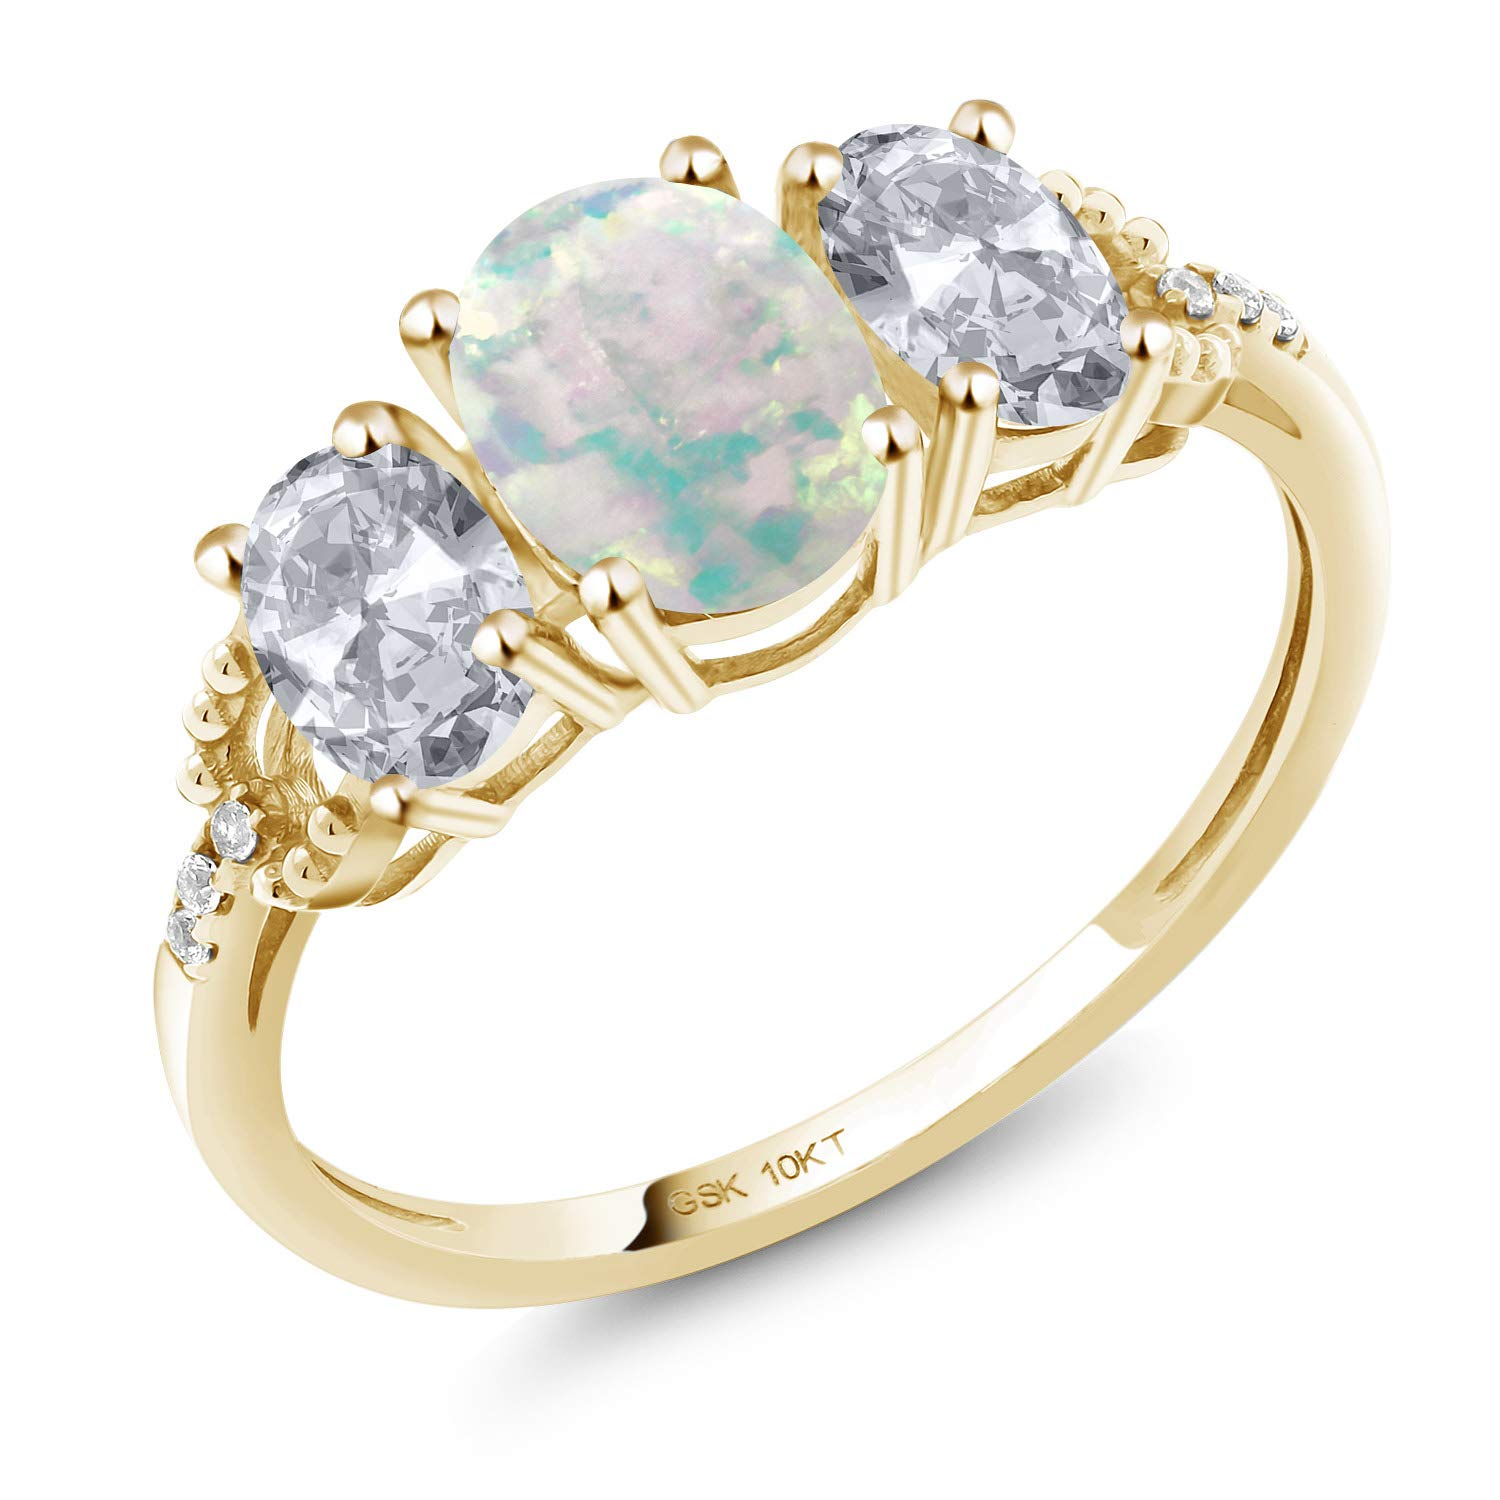 Gem Stone King 10K Yellow Gold Engagement Ring 2.22 Ct Oval Cabochon White Simulated Opal White Topaz